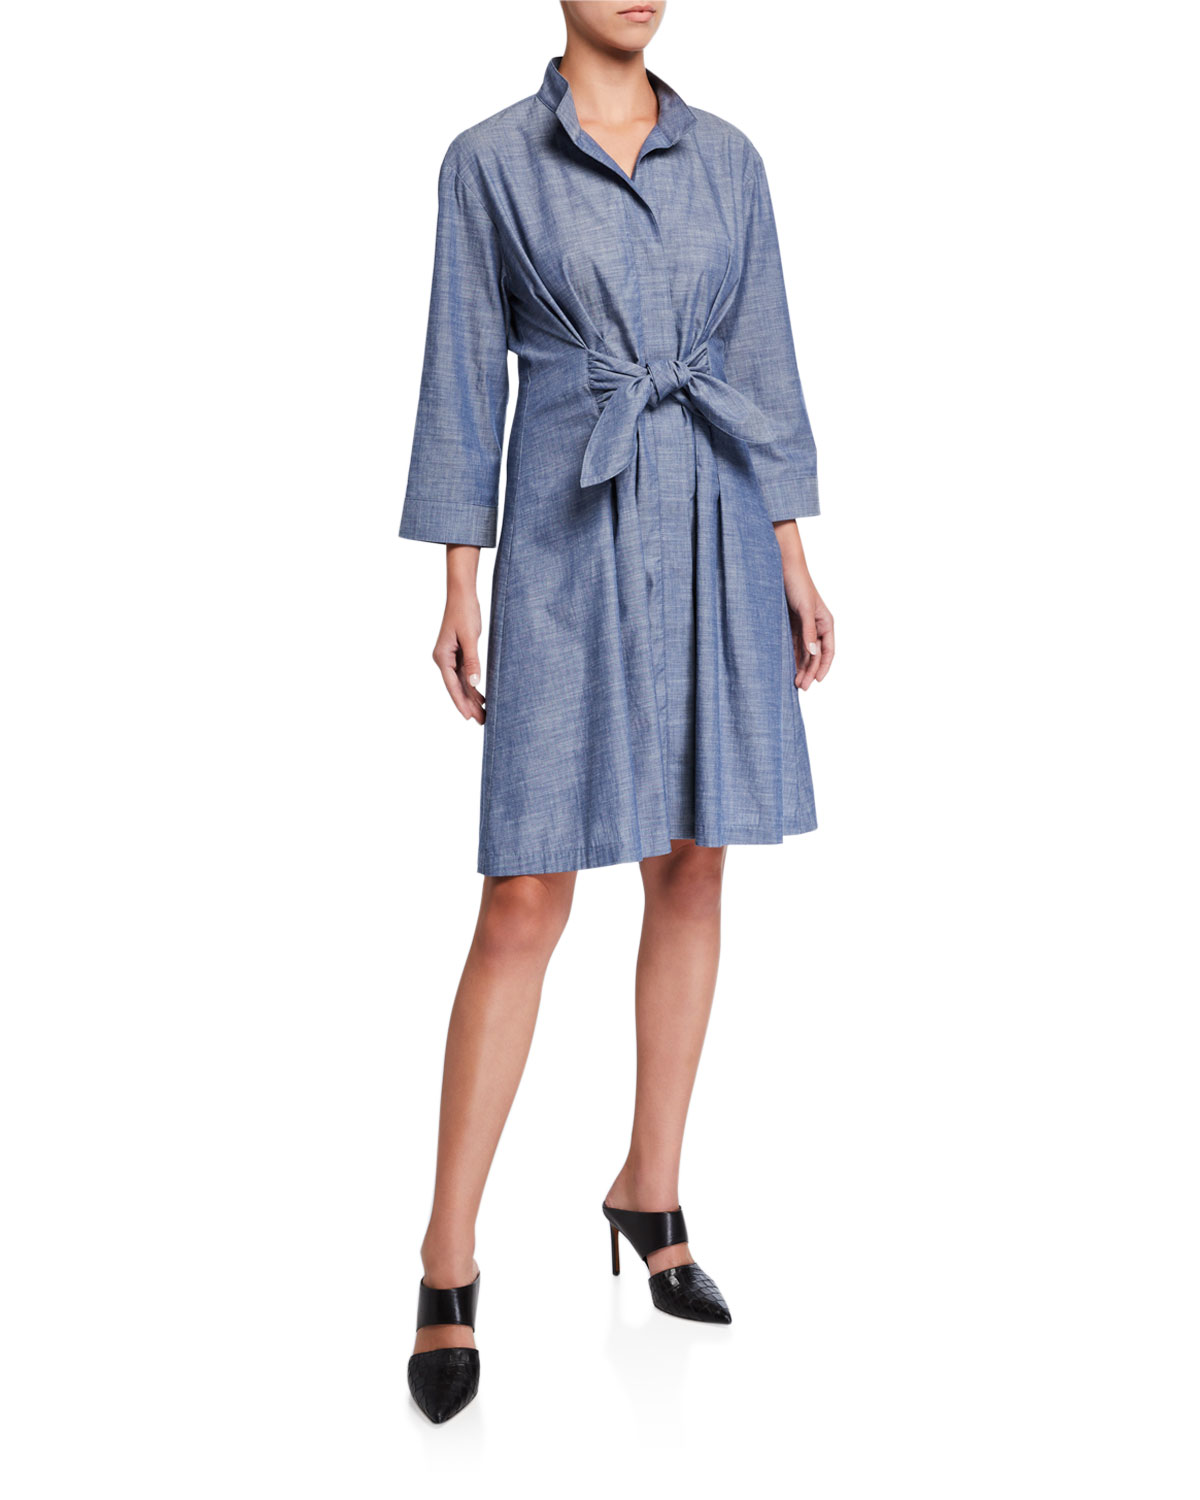 Finley PETITE ROCKY TIE-FRONT 3/4-SLEEVE CHAMBRAY DRESS